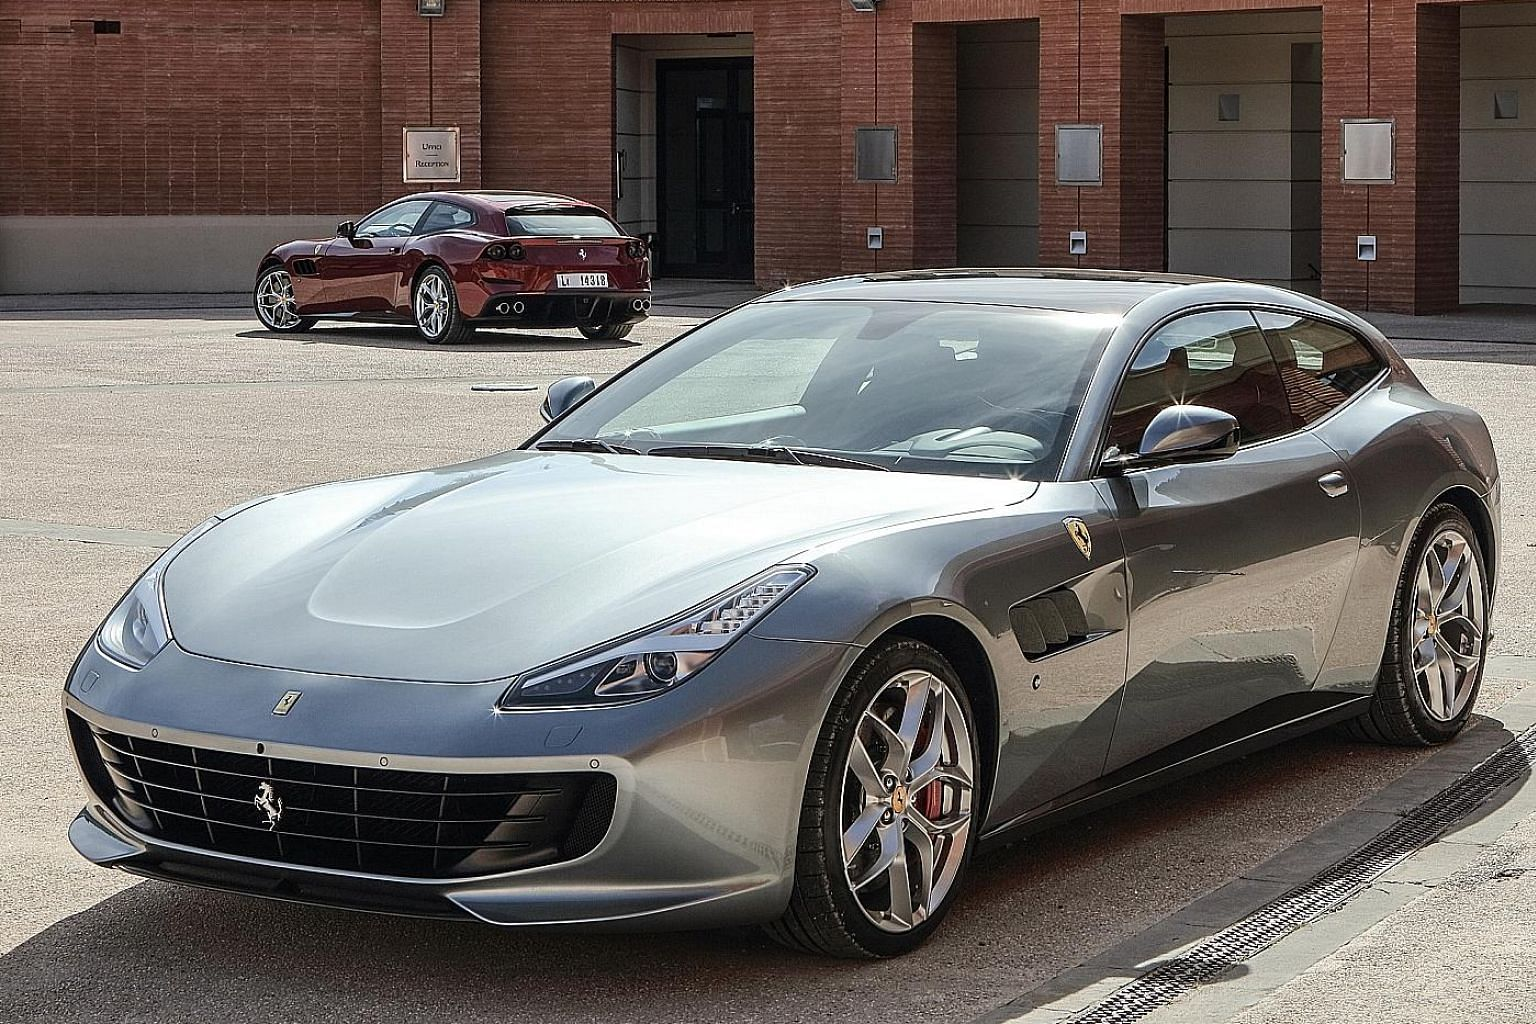 The performance of the Ferrari GTC4Lusso T (above) is impressive, despite not having the V12's all-wheel-drive system.